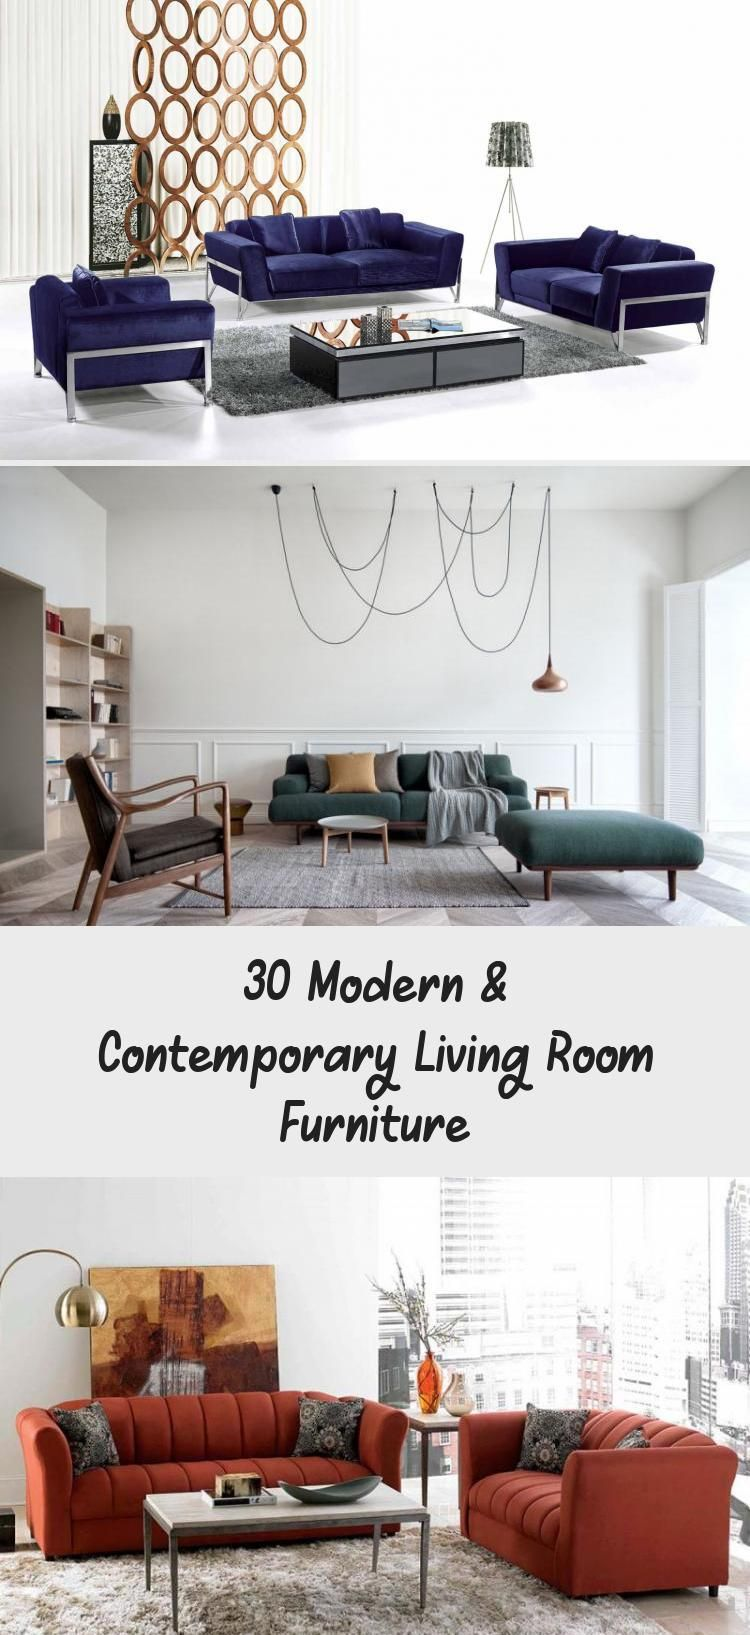 White Walls And Contemporary Furniture Present This Vibrant Room A In 2020 Modern Furniture Living Room Contemporary Modern Living Room Furniture Living Room Furniture